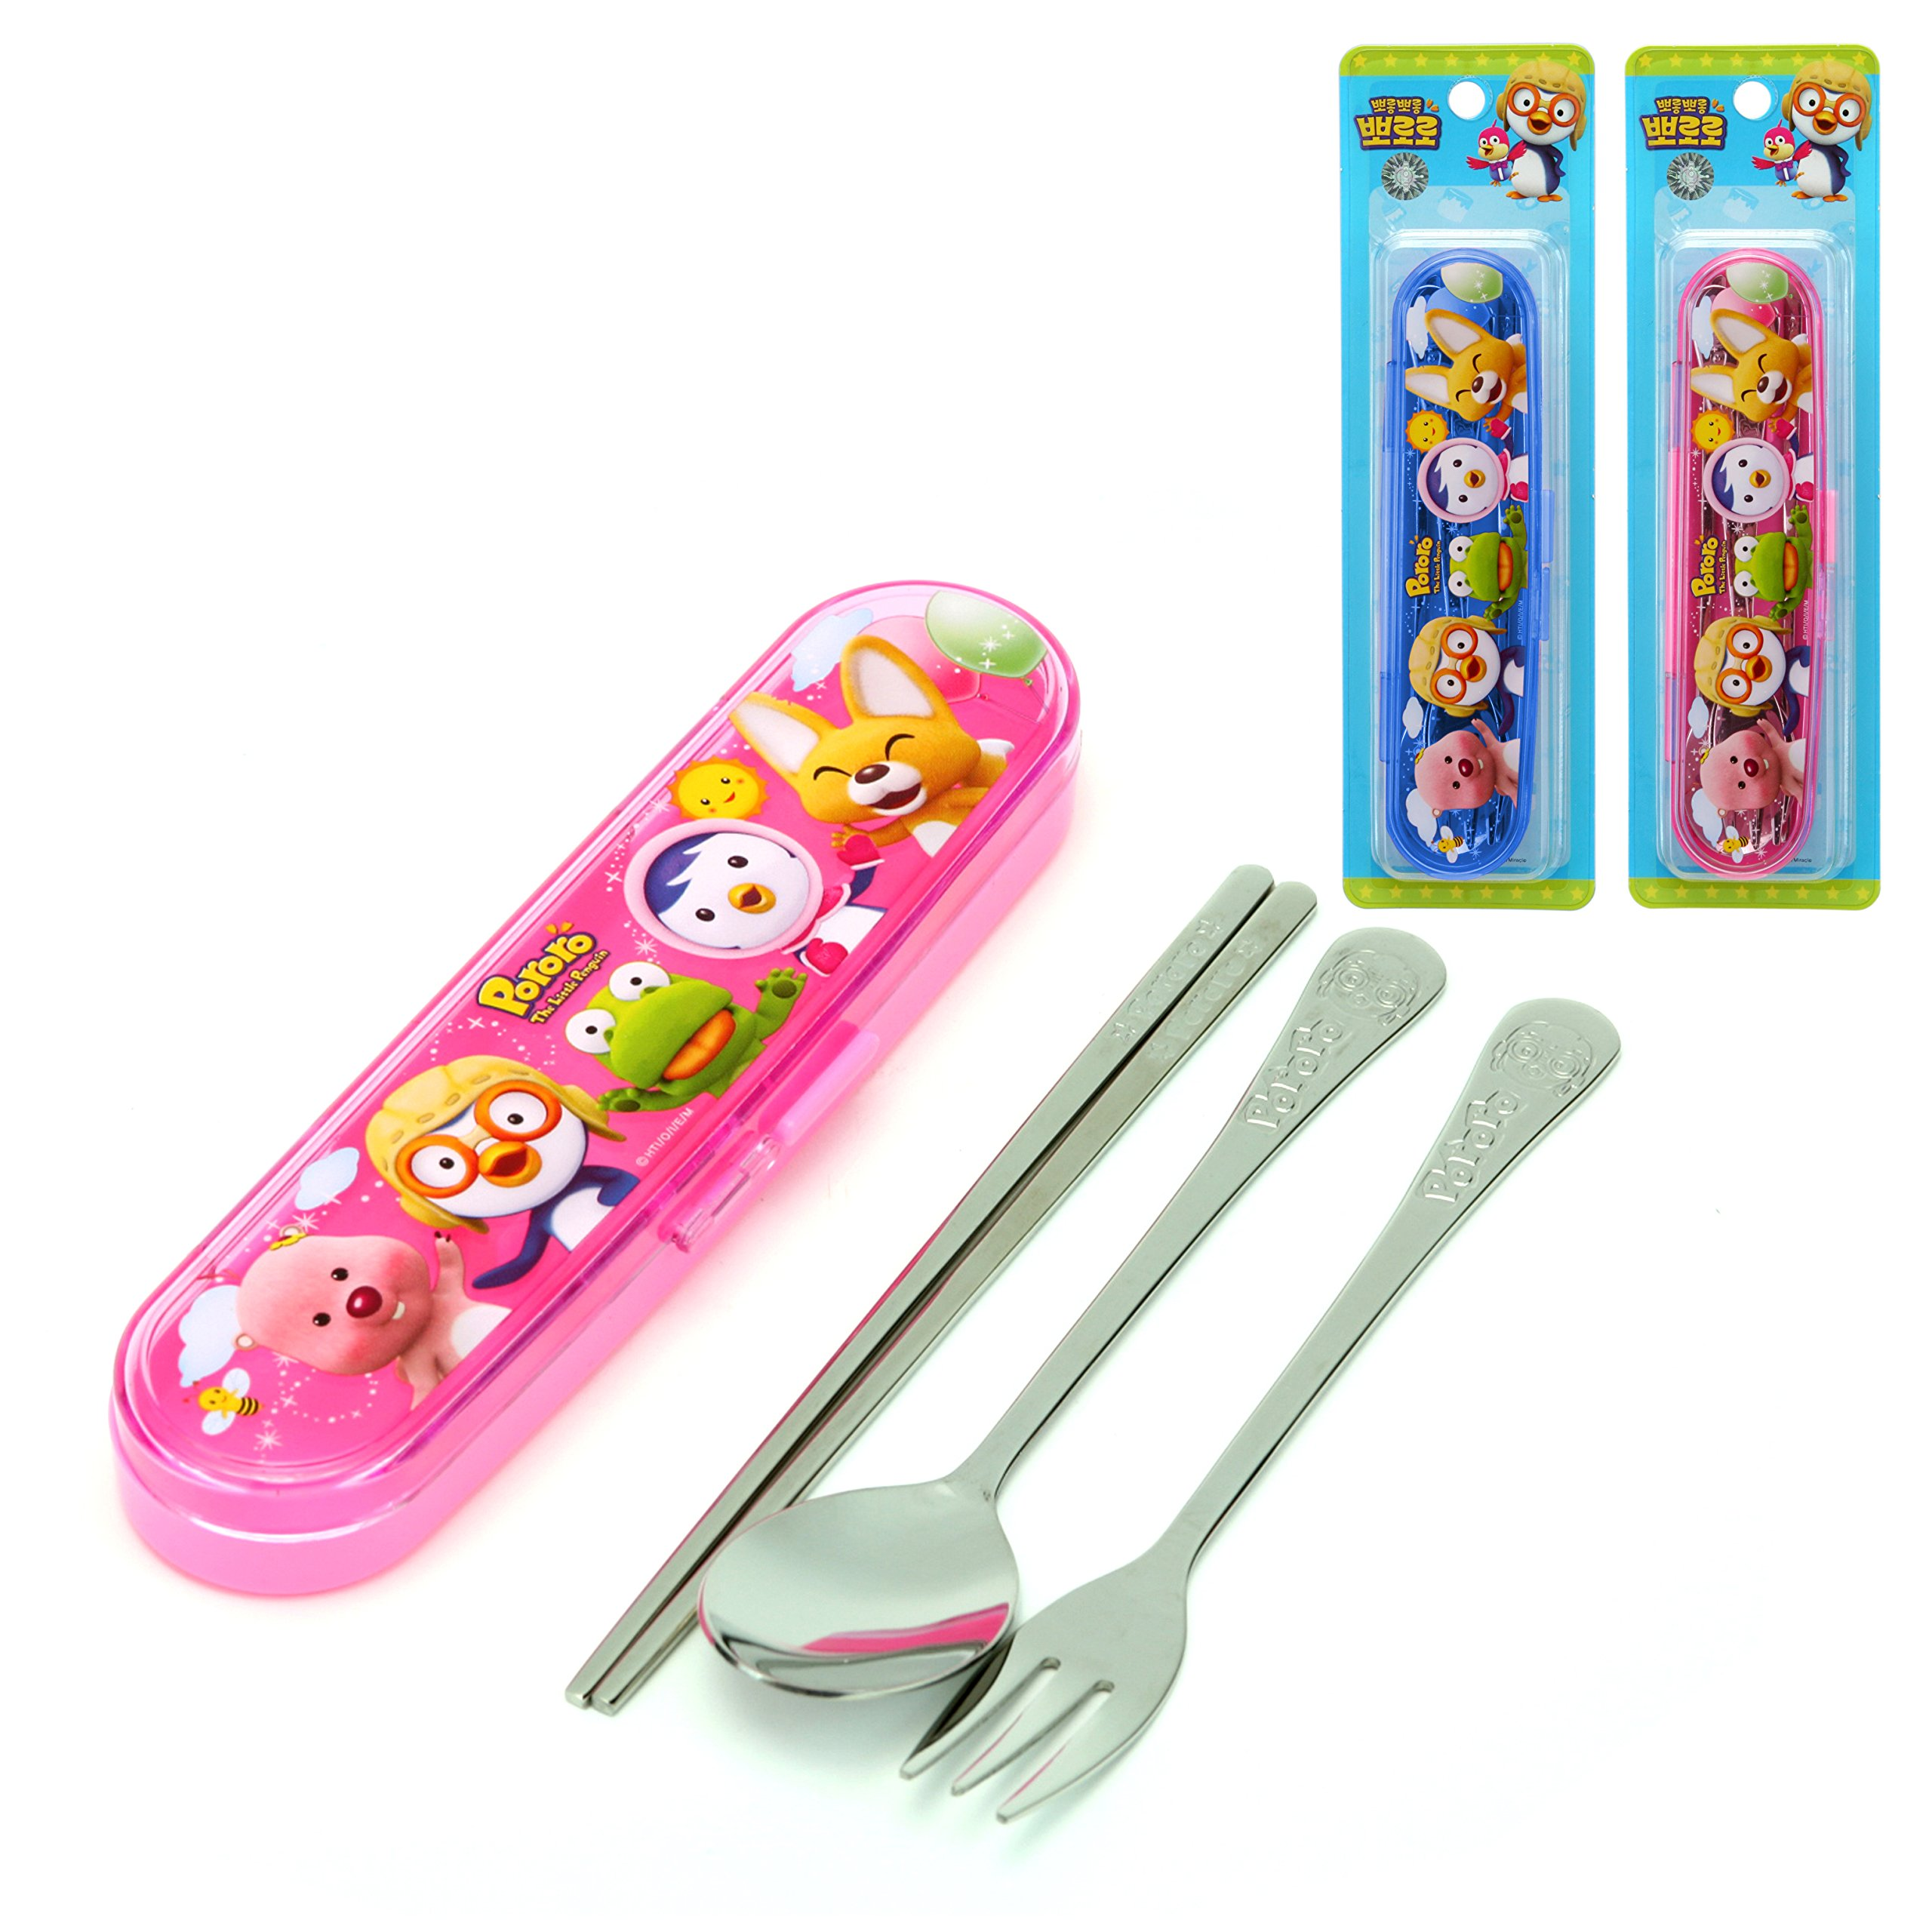 PORORO Stainless Steel Spoon, Fork, Chopsticks Hardcase Set- Pink